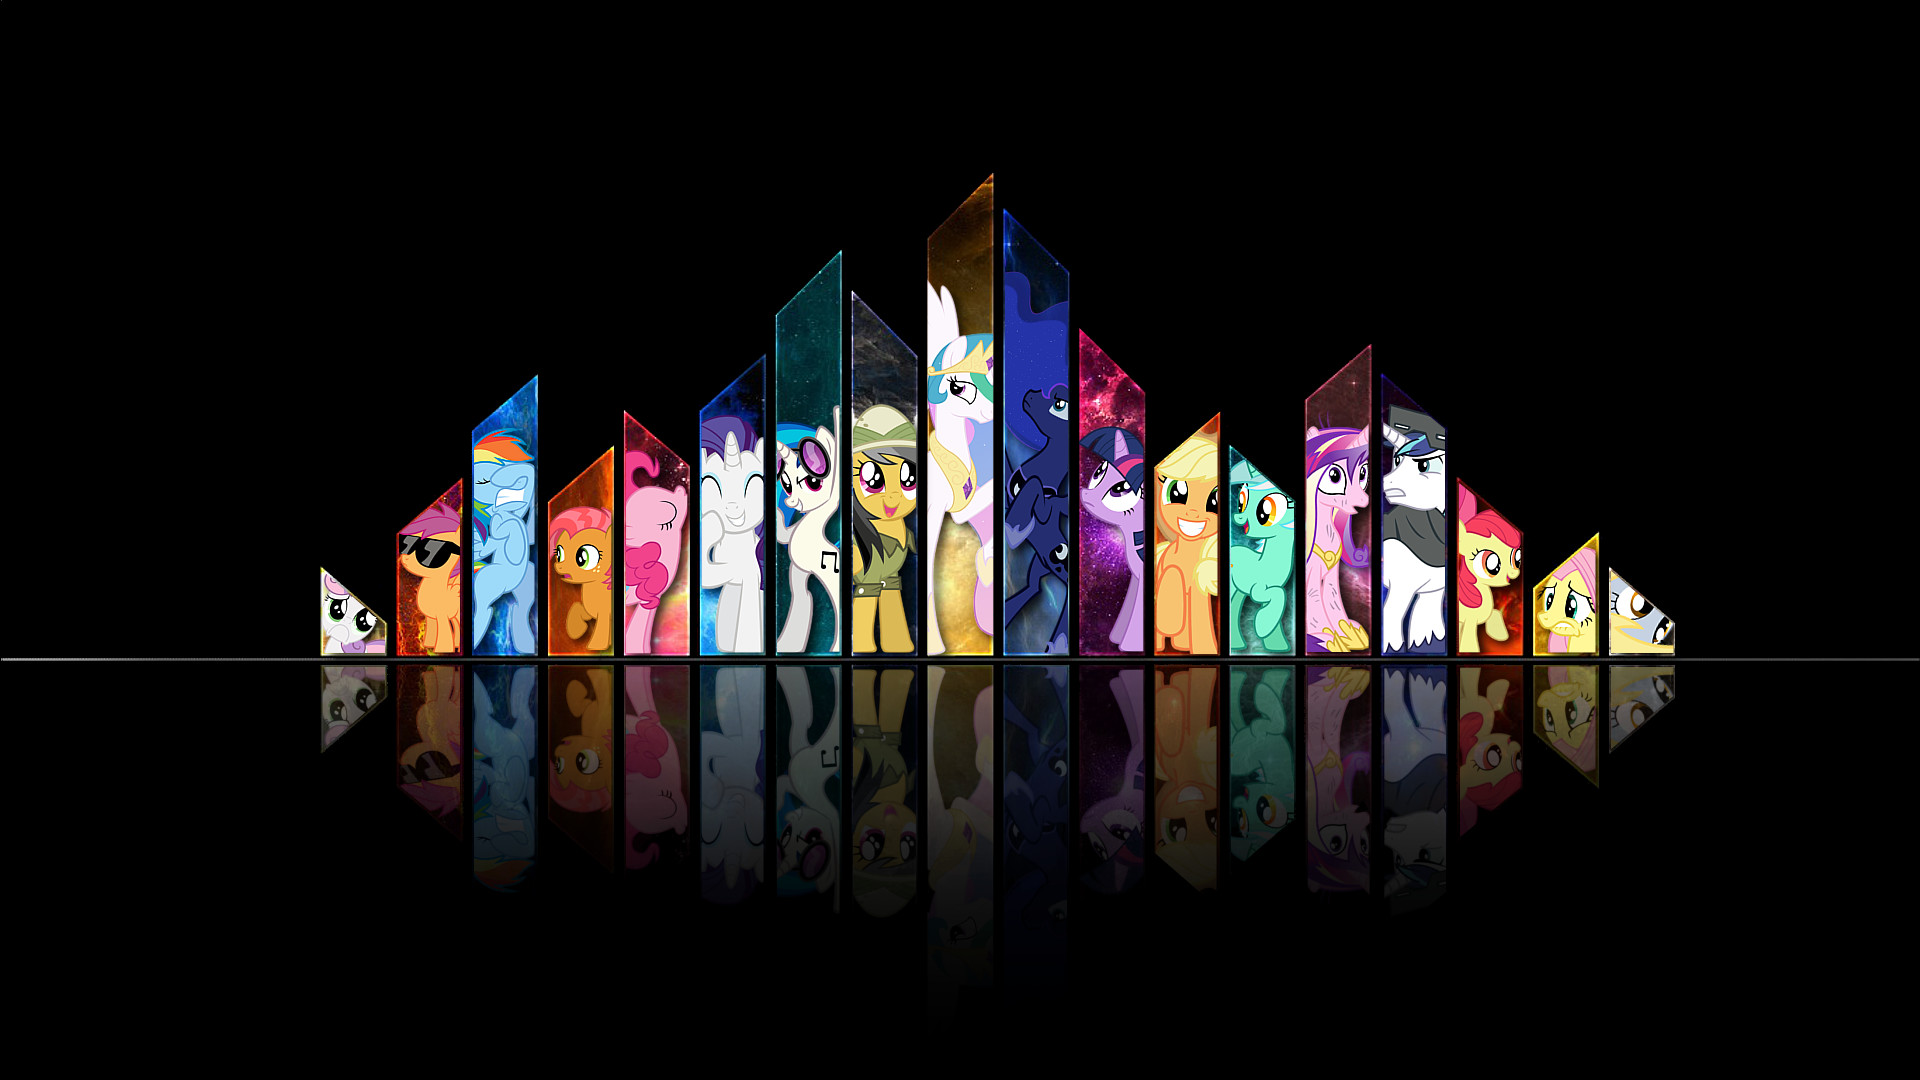 … wallpapers brony com t shirts and apparel for bronies and fans …